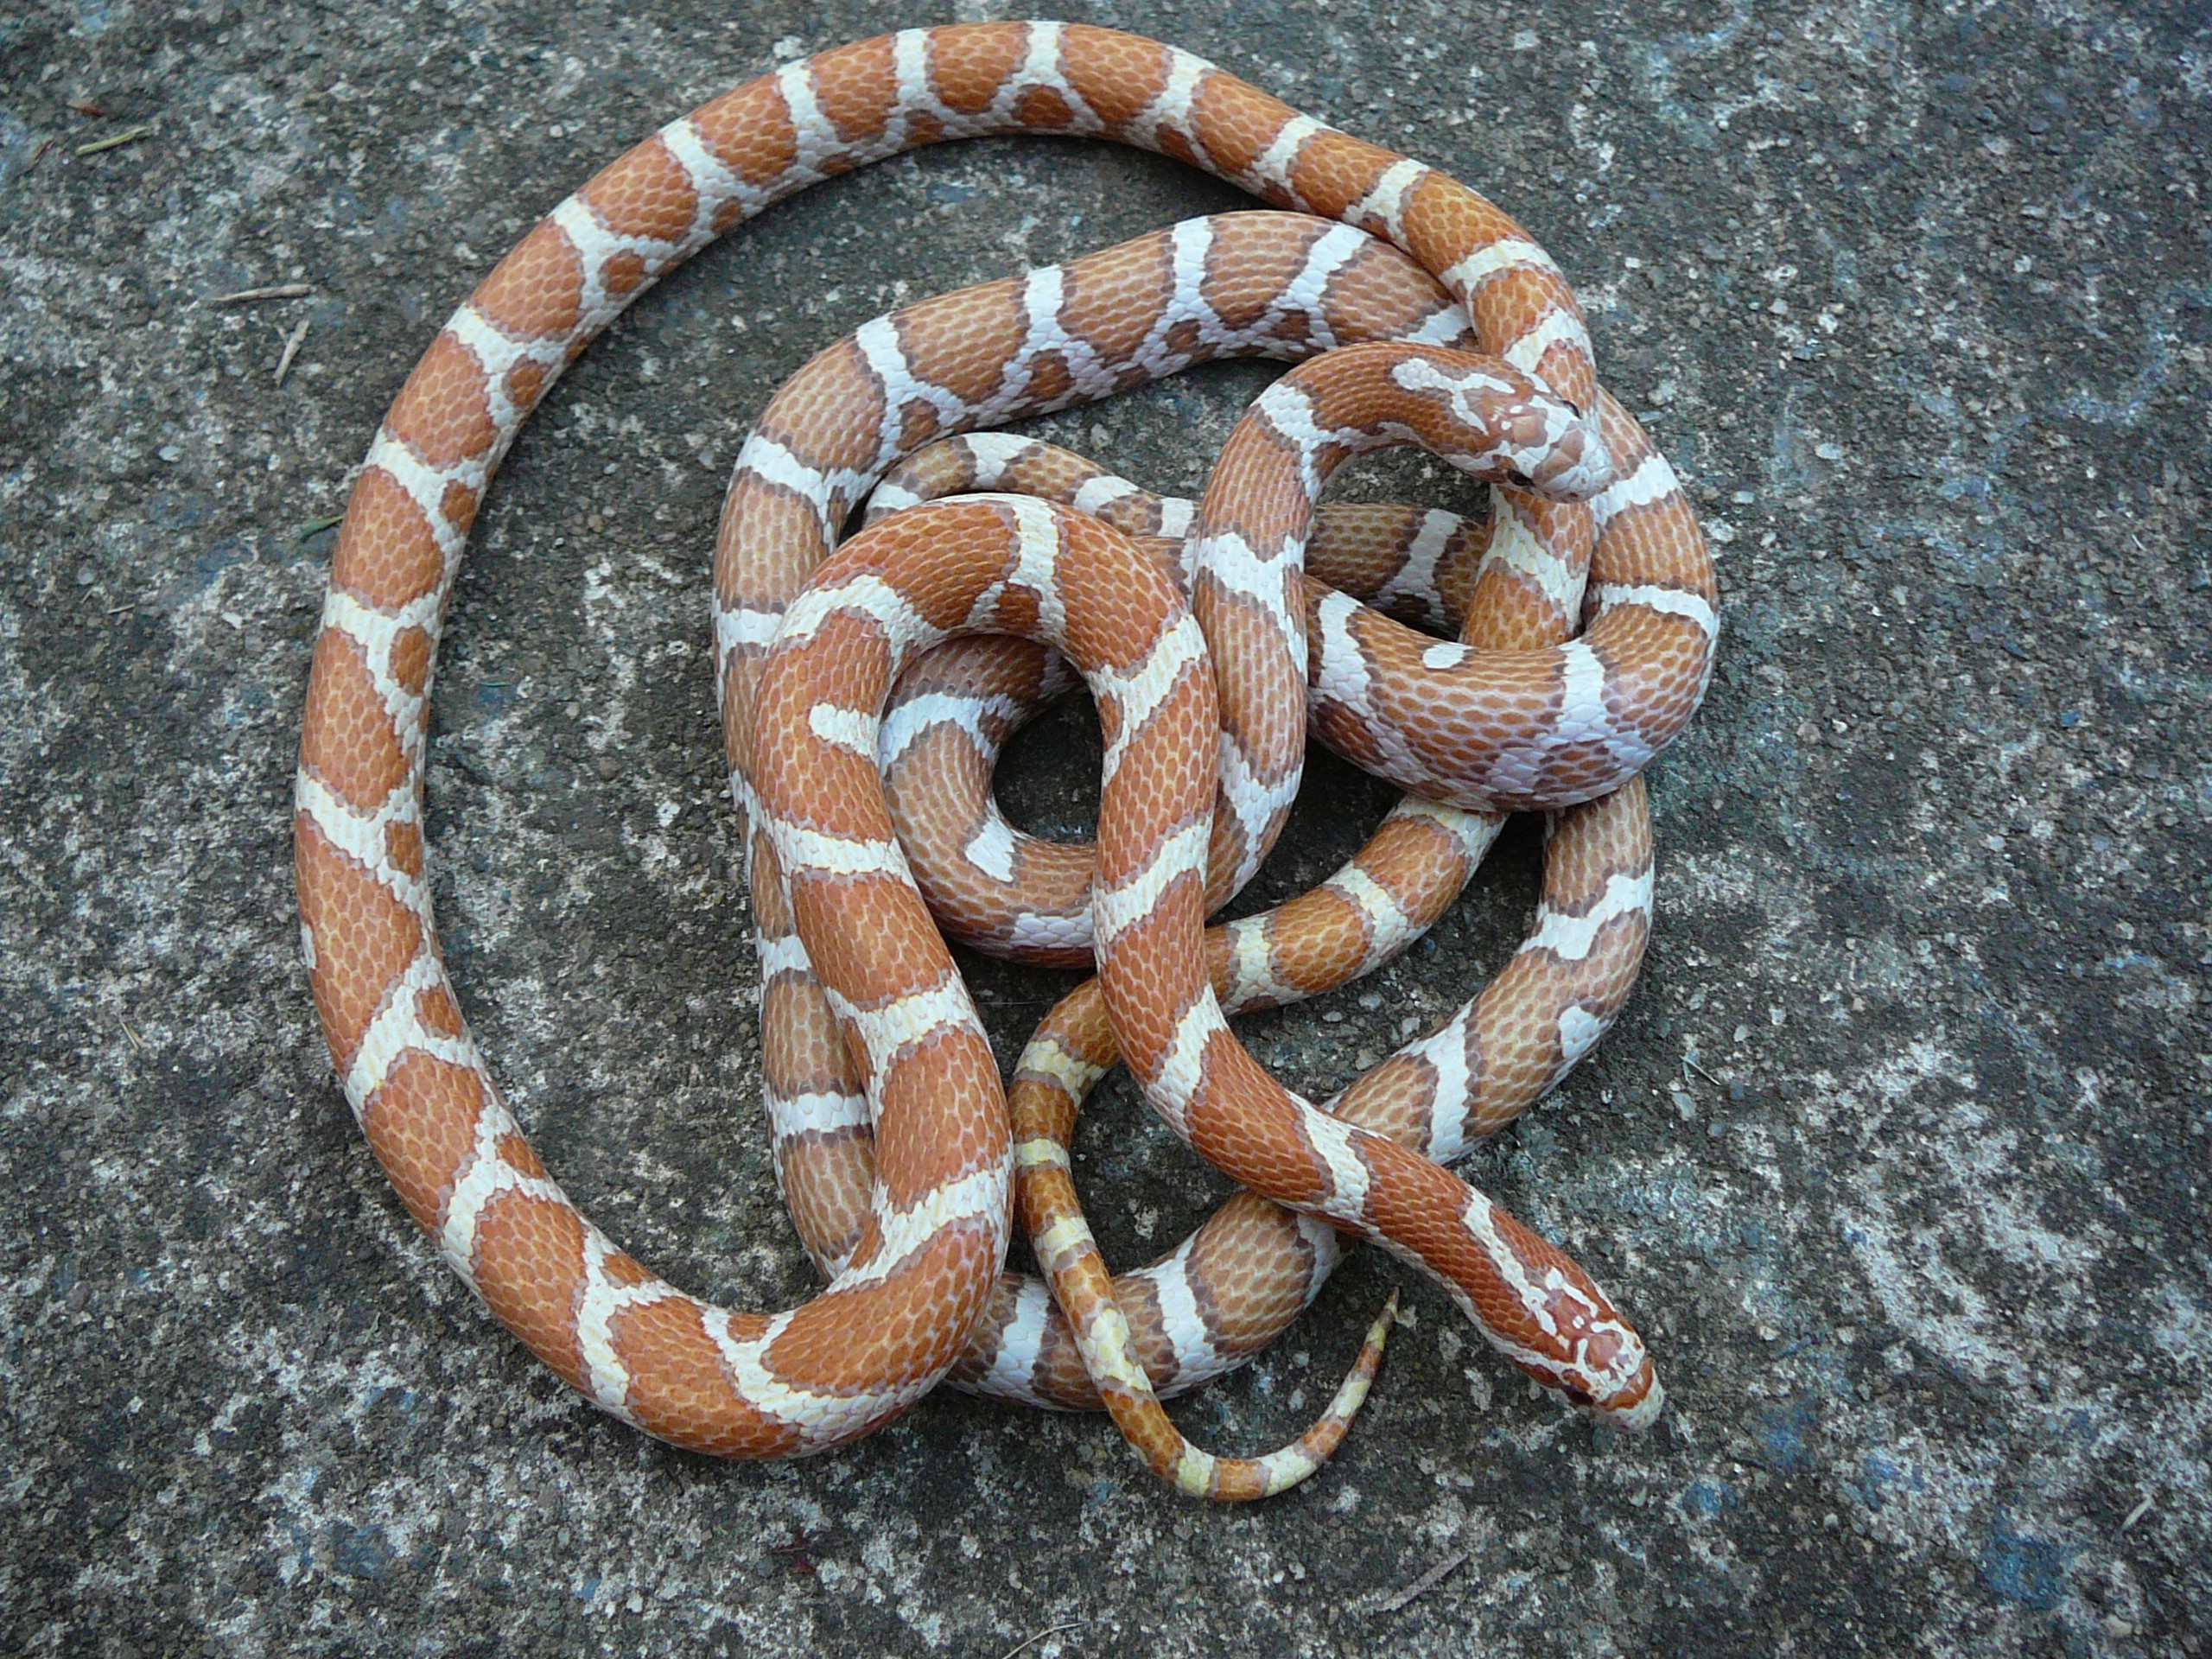 dns reptiles eastern milk snakes rh freewebs com